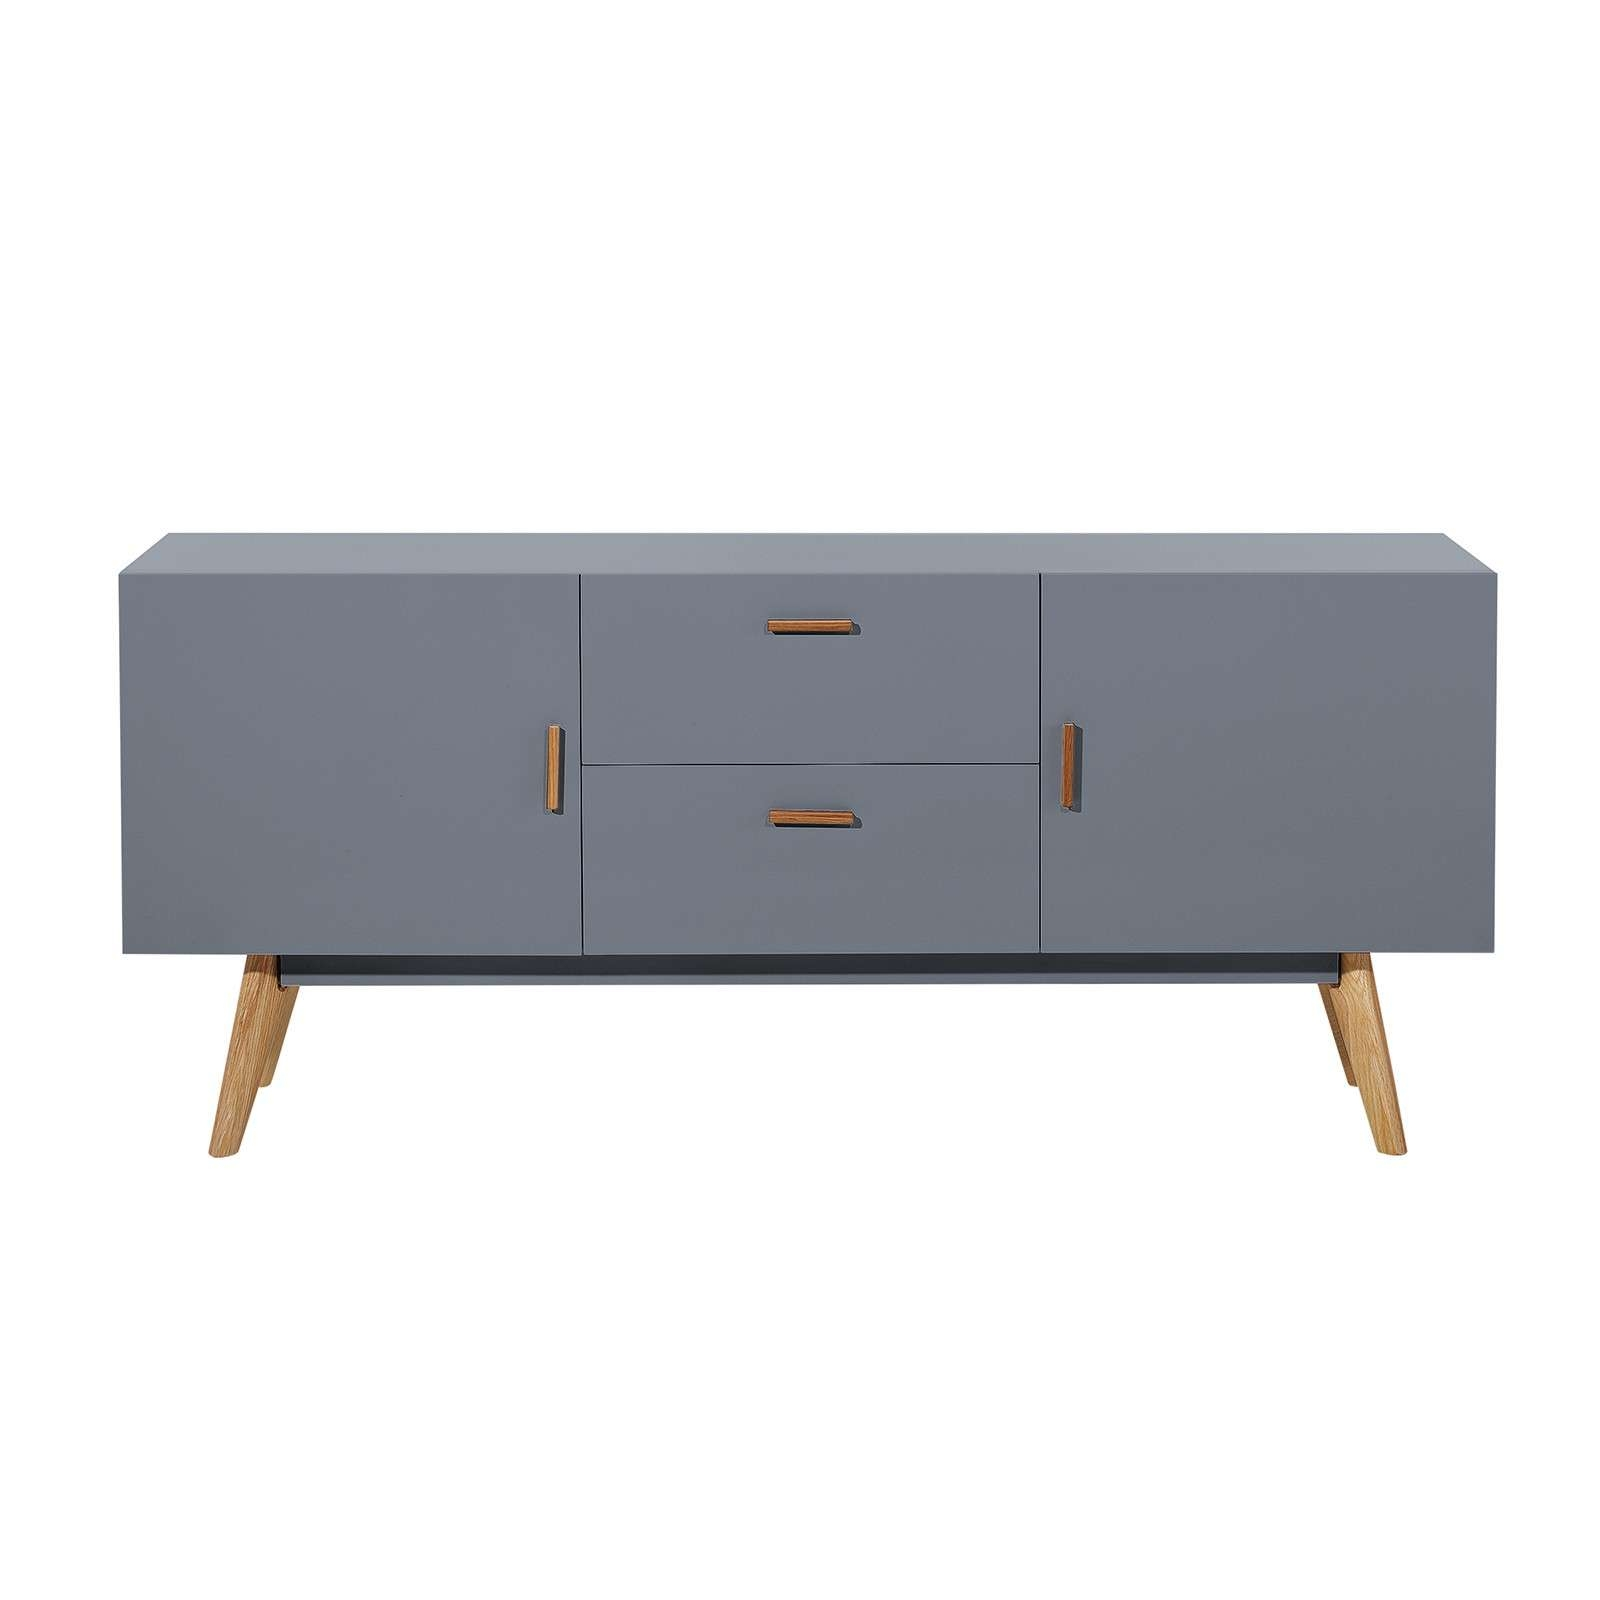 Scandinavian Retro Style White Sideboard Abreo Home Furniture Pertaining To Retro Sideboards (View 10 of 20)